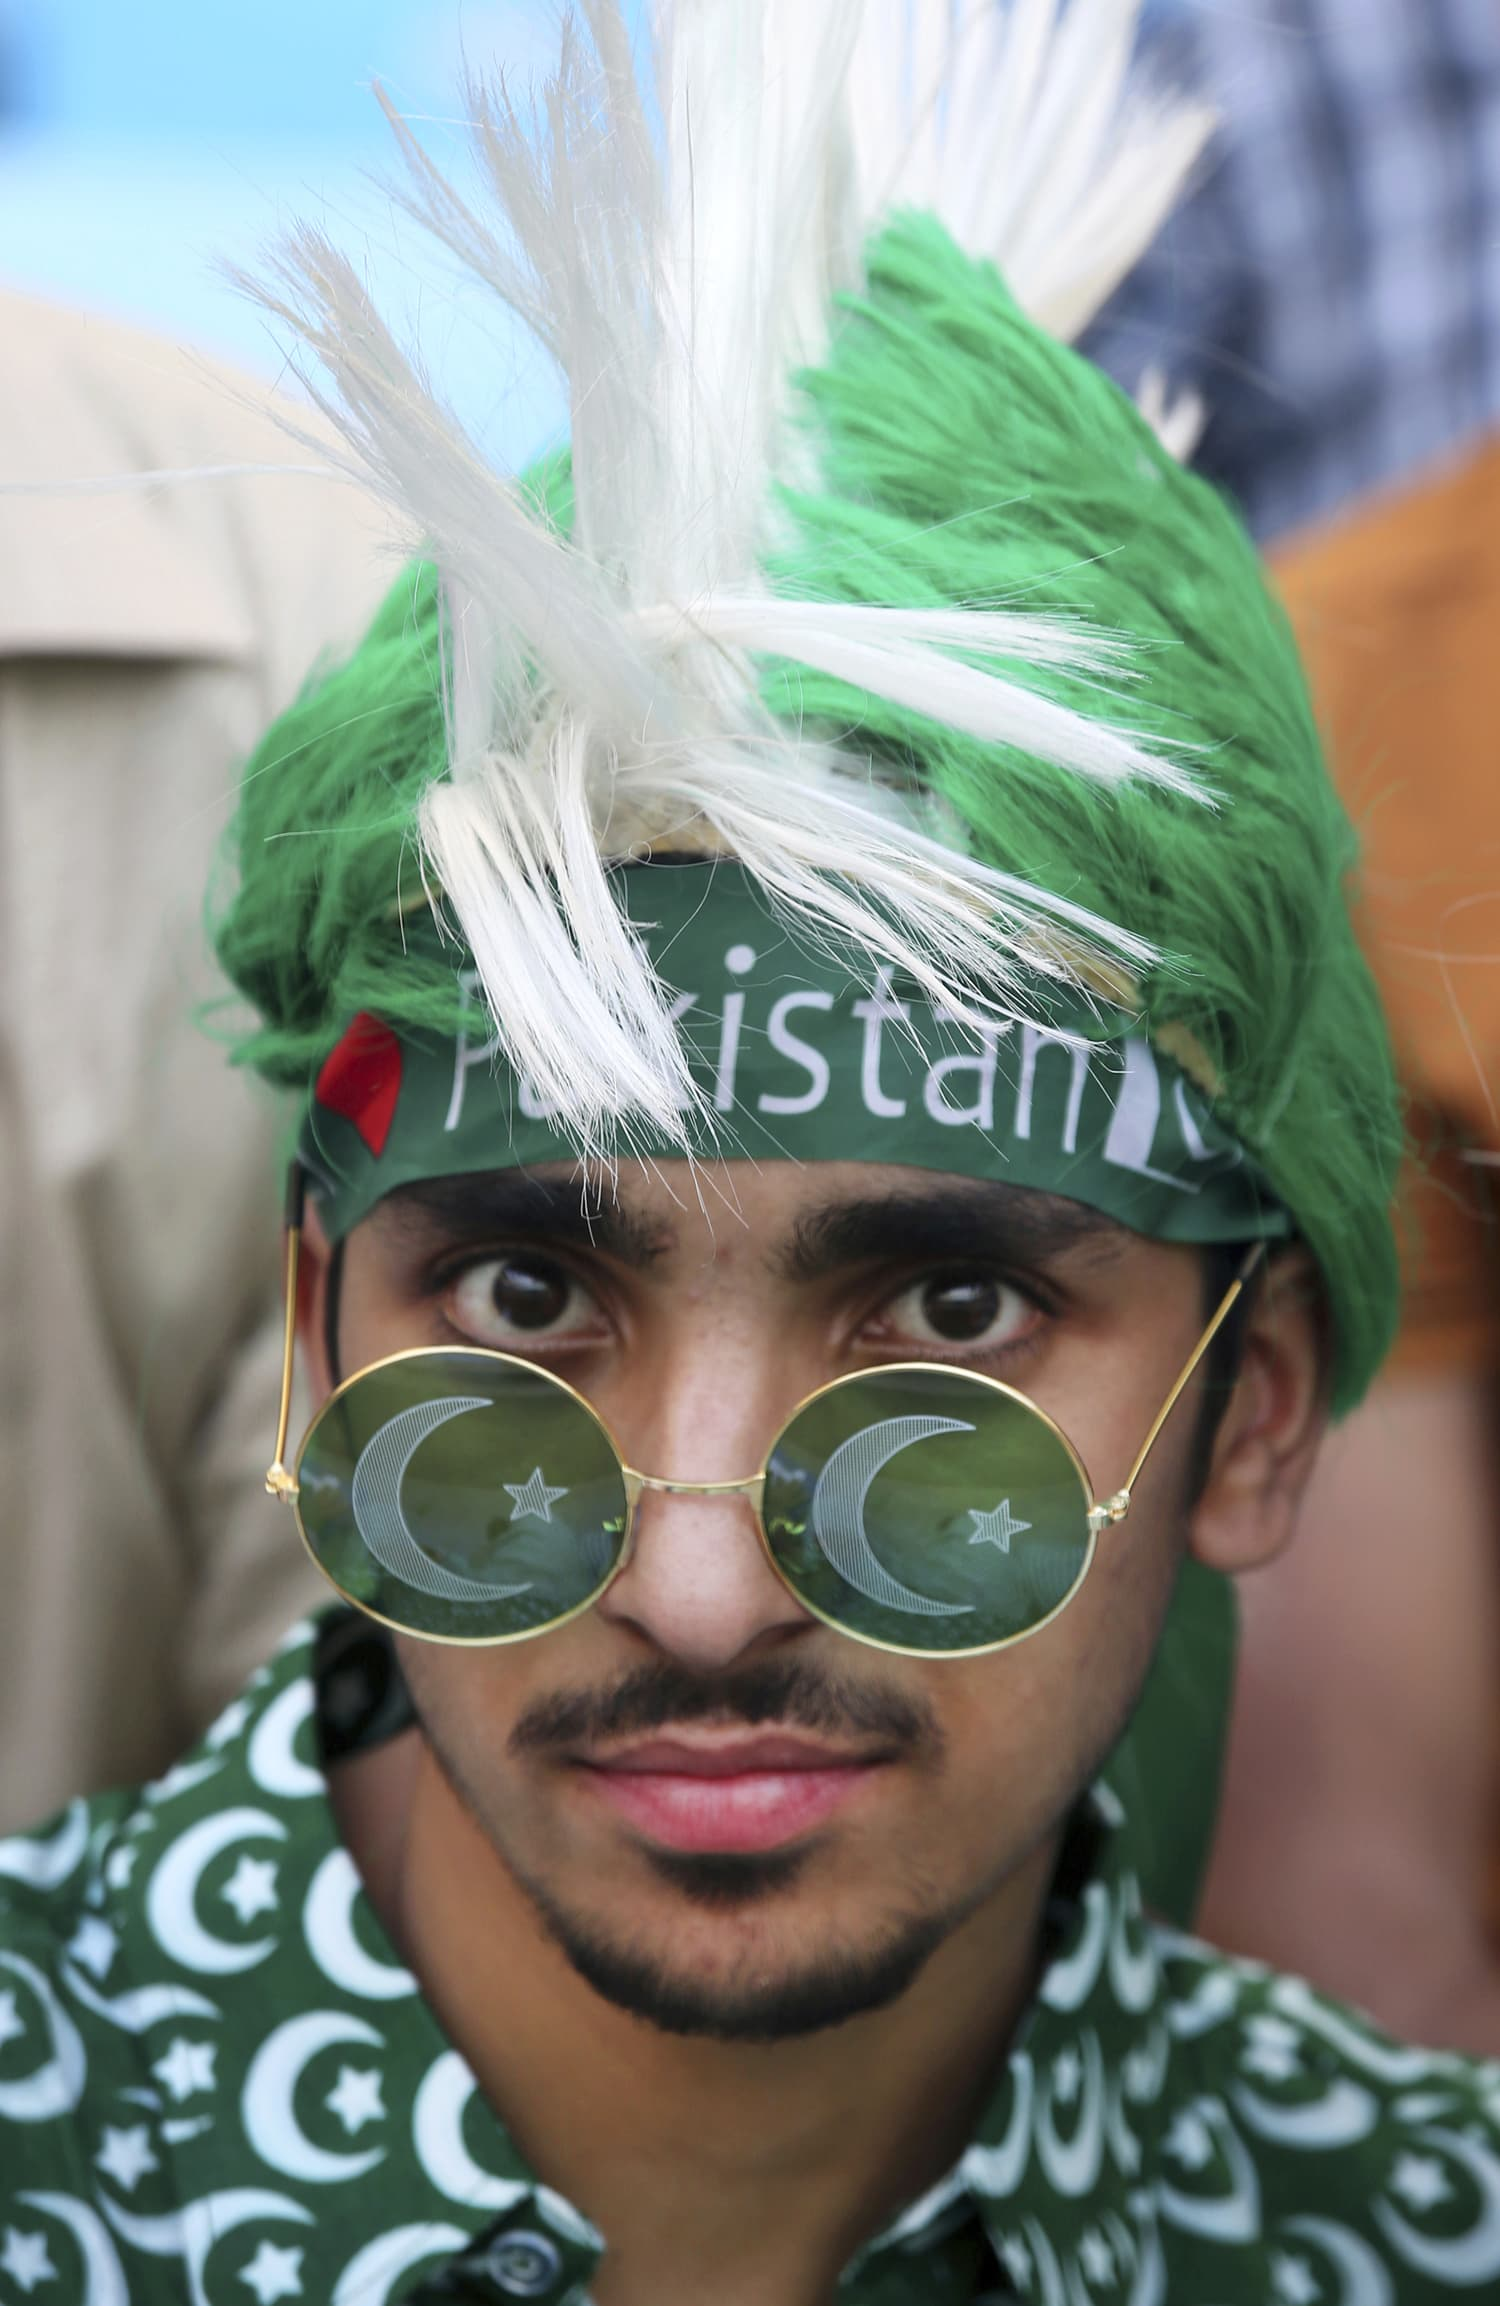 A Pakistani supporter sports a headgear and sunglasses as he waits for the start of the match. —AP.